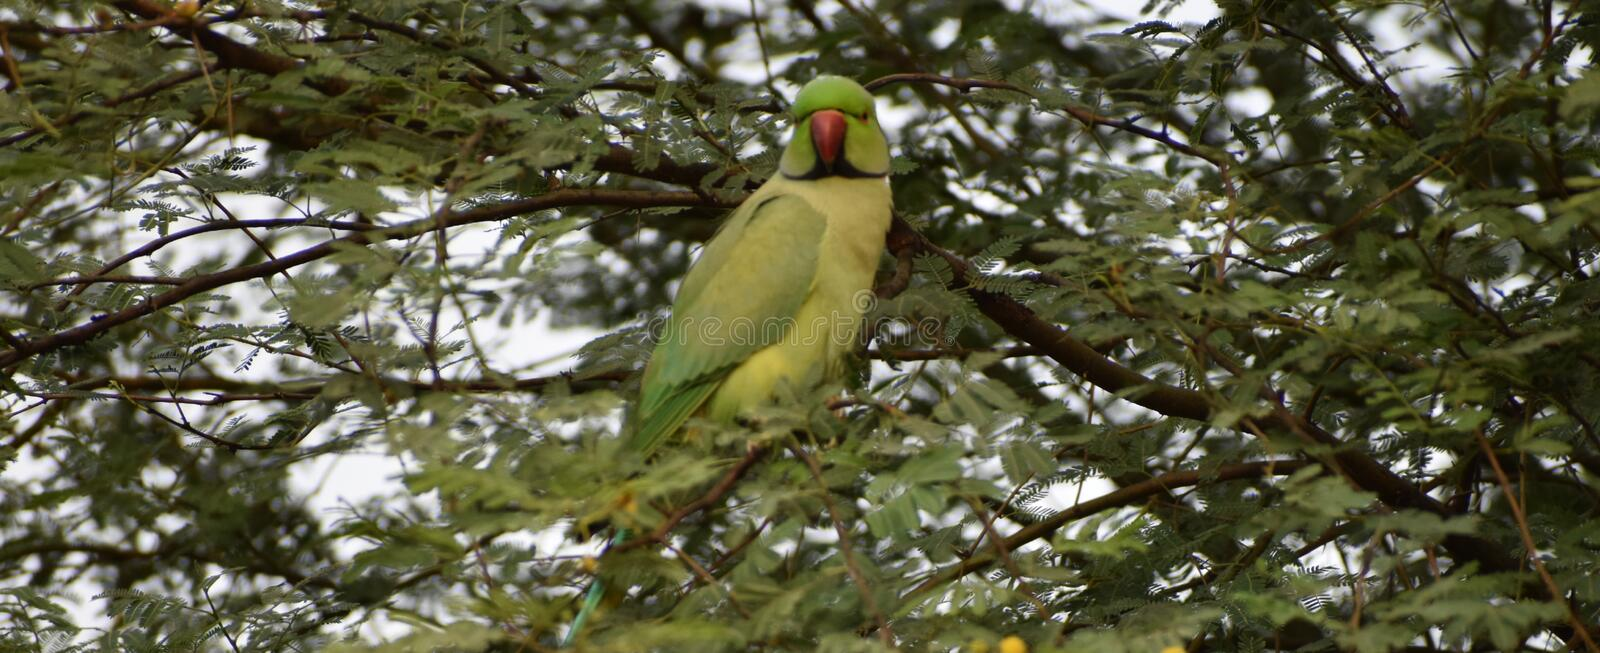 This is an image of beautiful parrot bird or parakeet or macaw bird on the tree in keoladeo national park in rajasthan india royalty free stock image